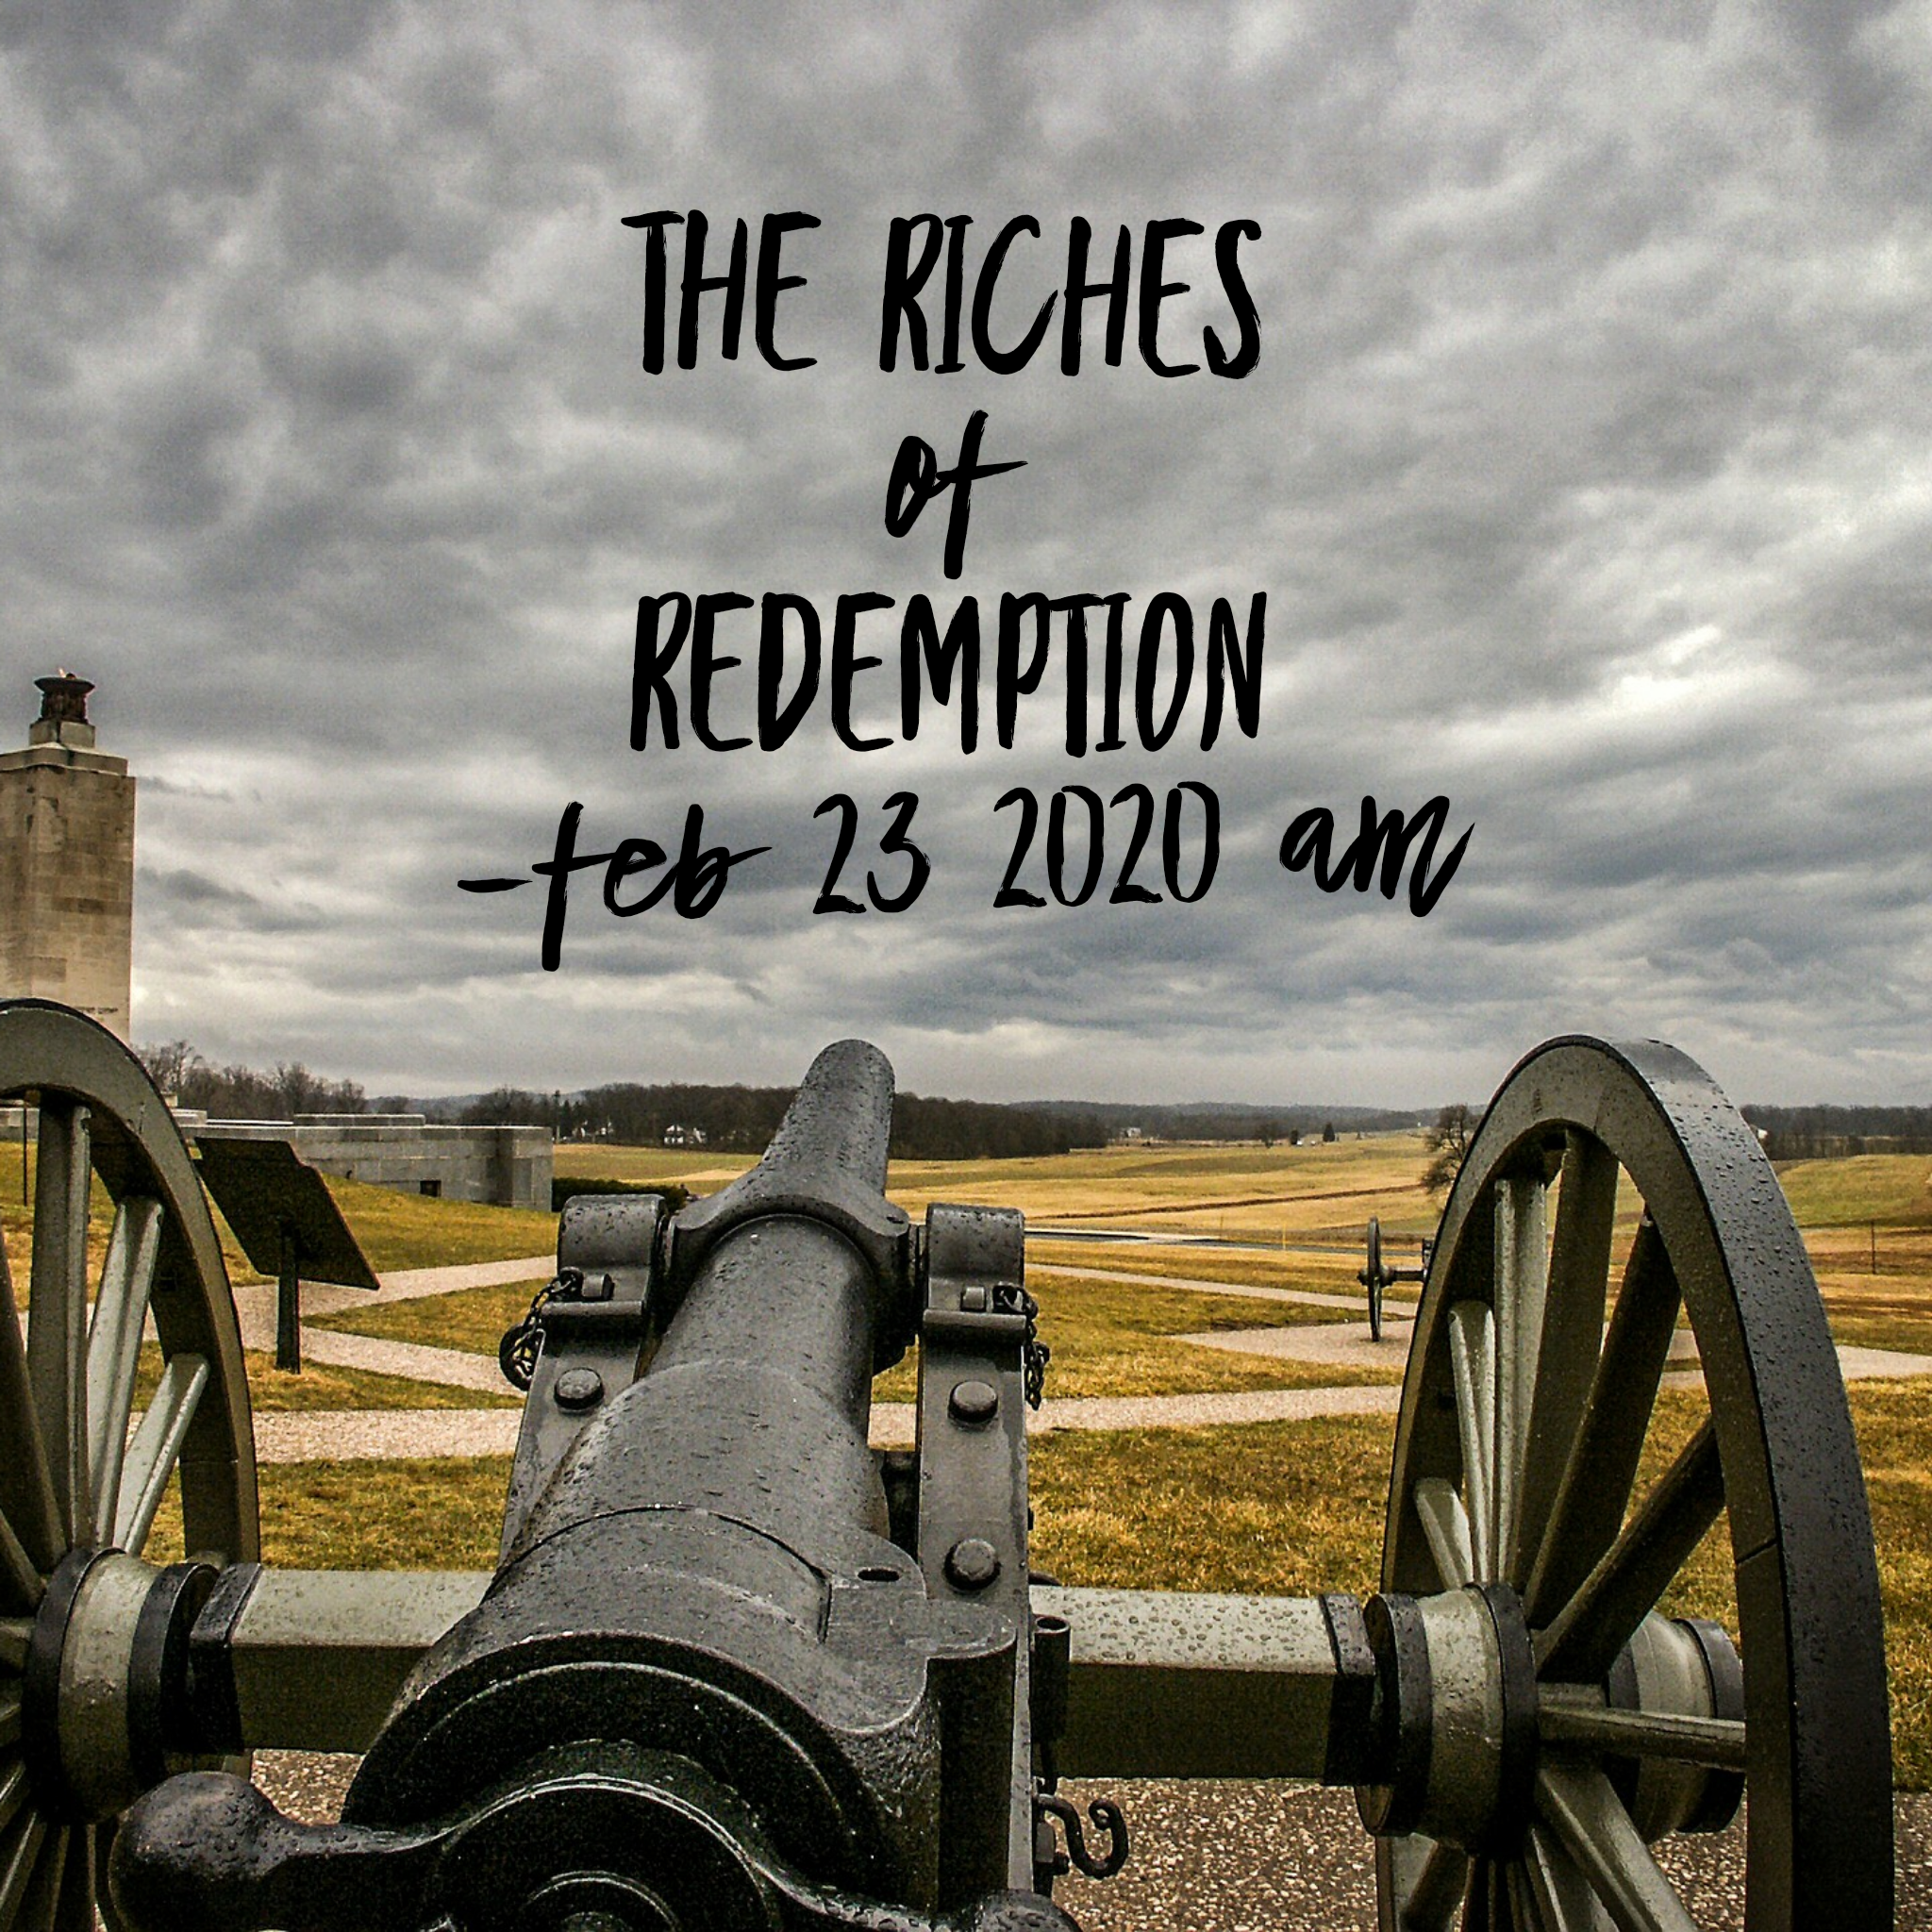 The Riches of Redemption